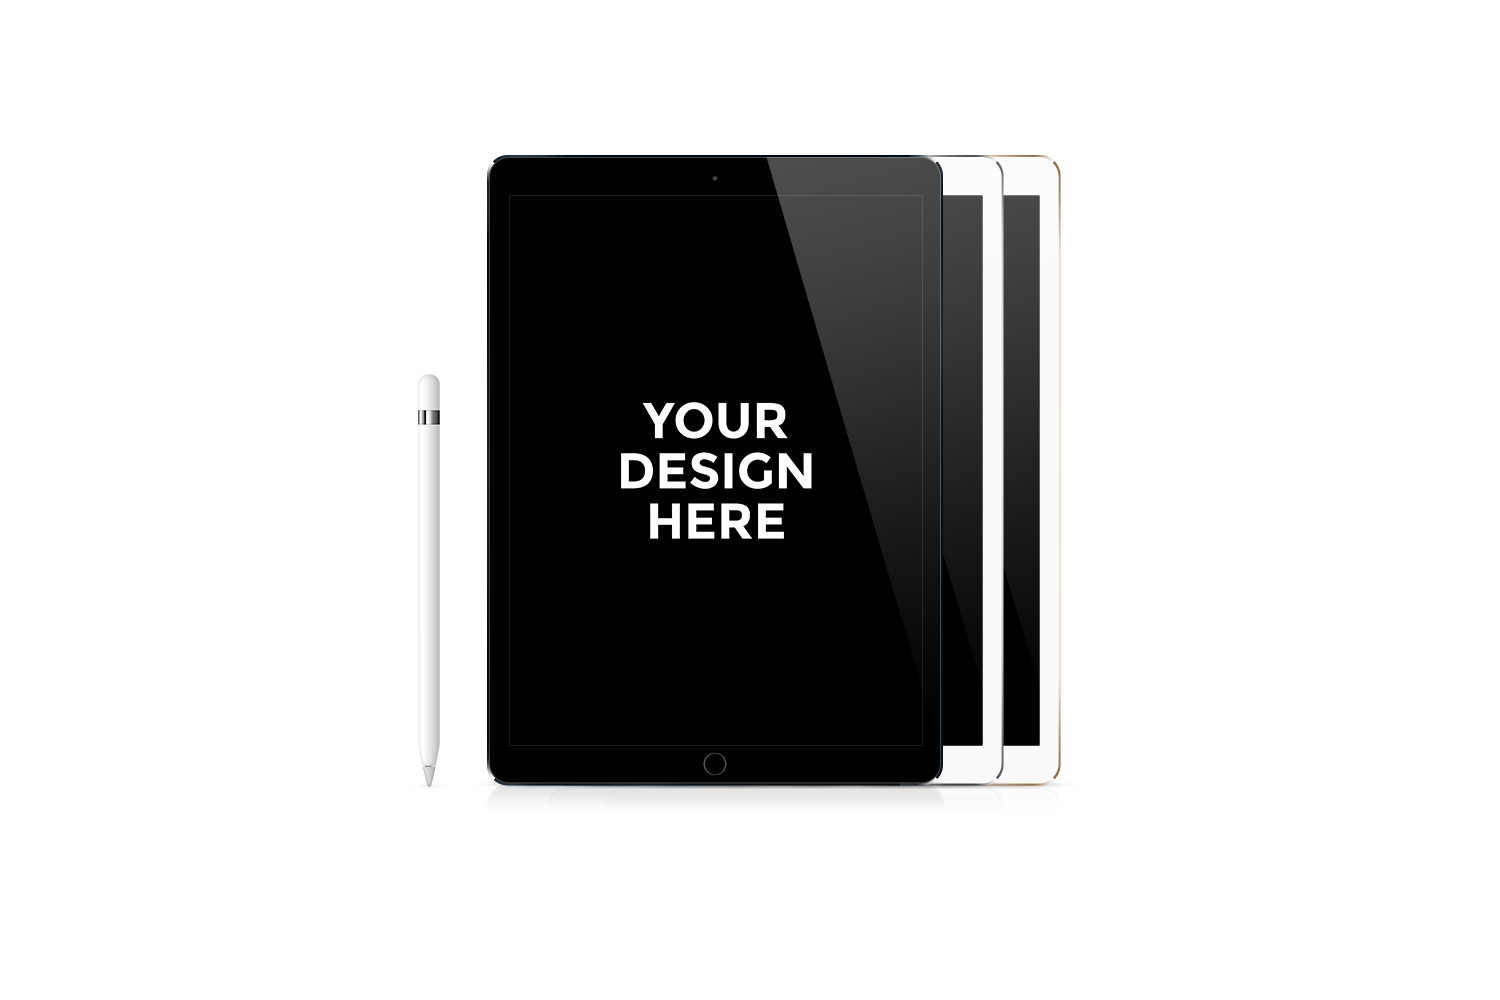 iPad Pro iPhone 6s Plus Mockups